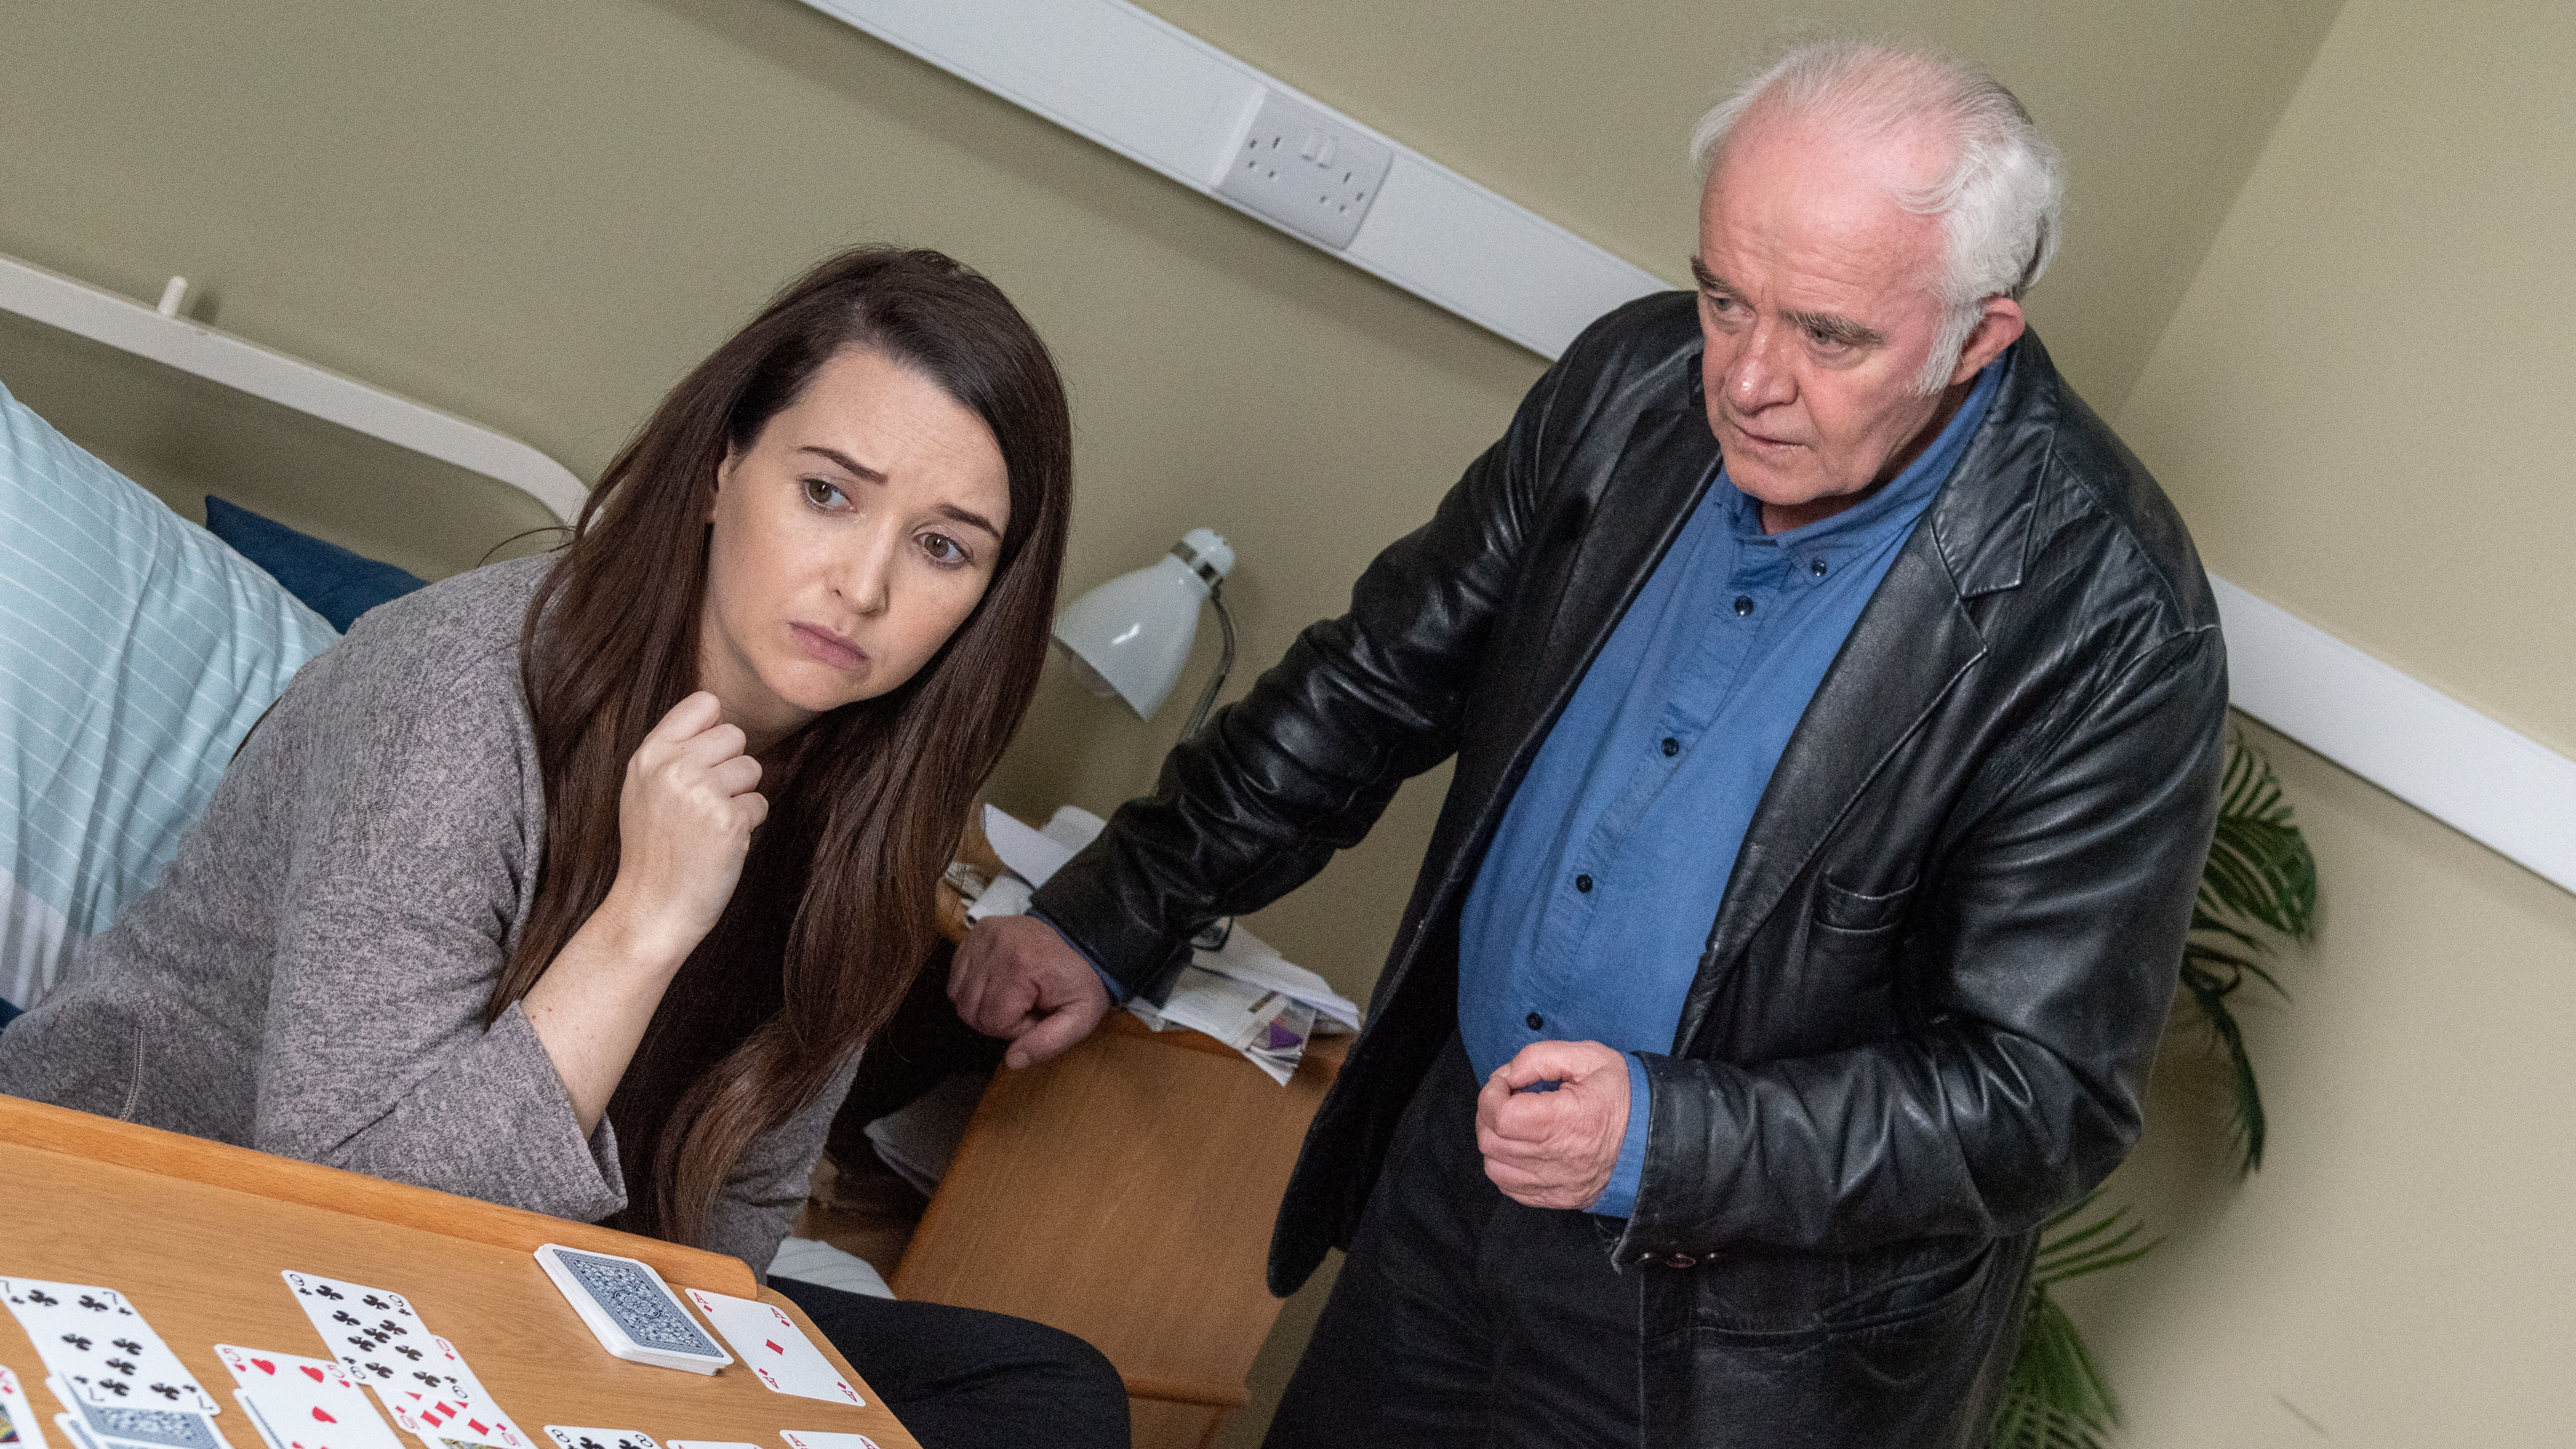 Tadhg plots Katy's release from hospital in Ros na Rún